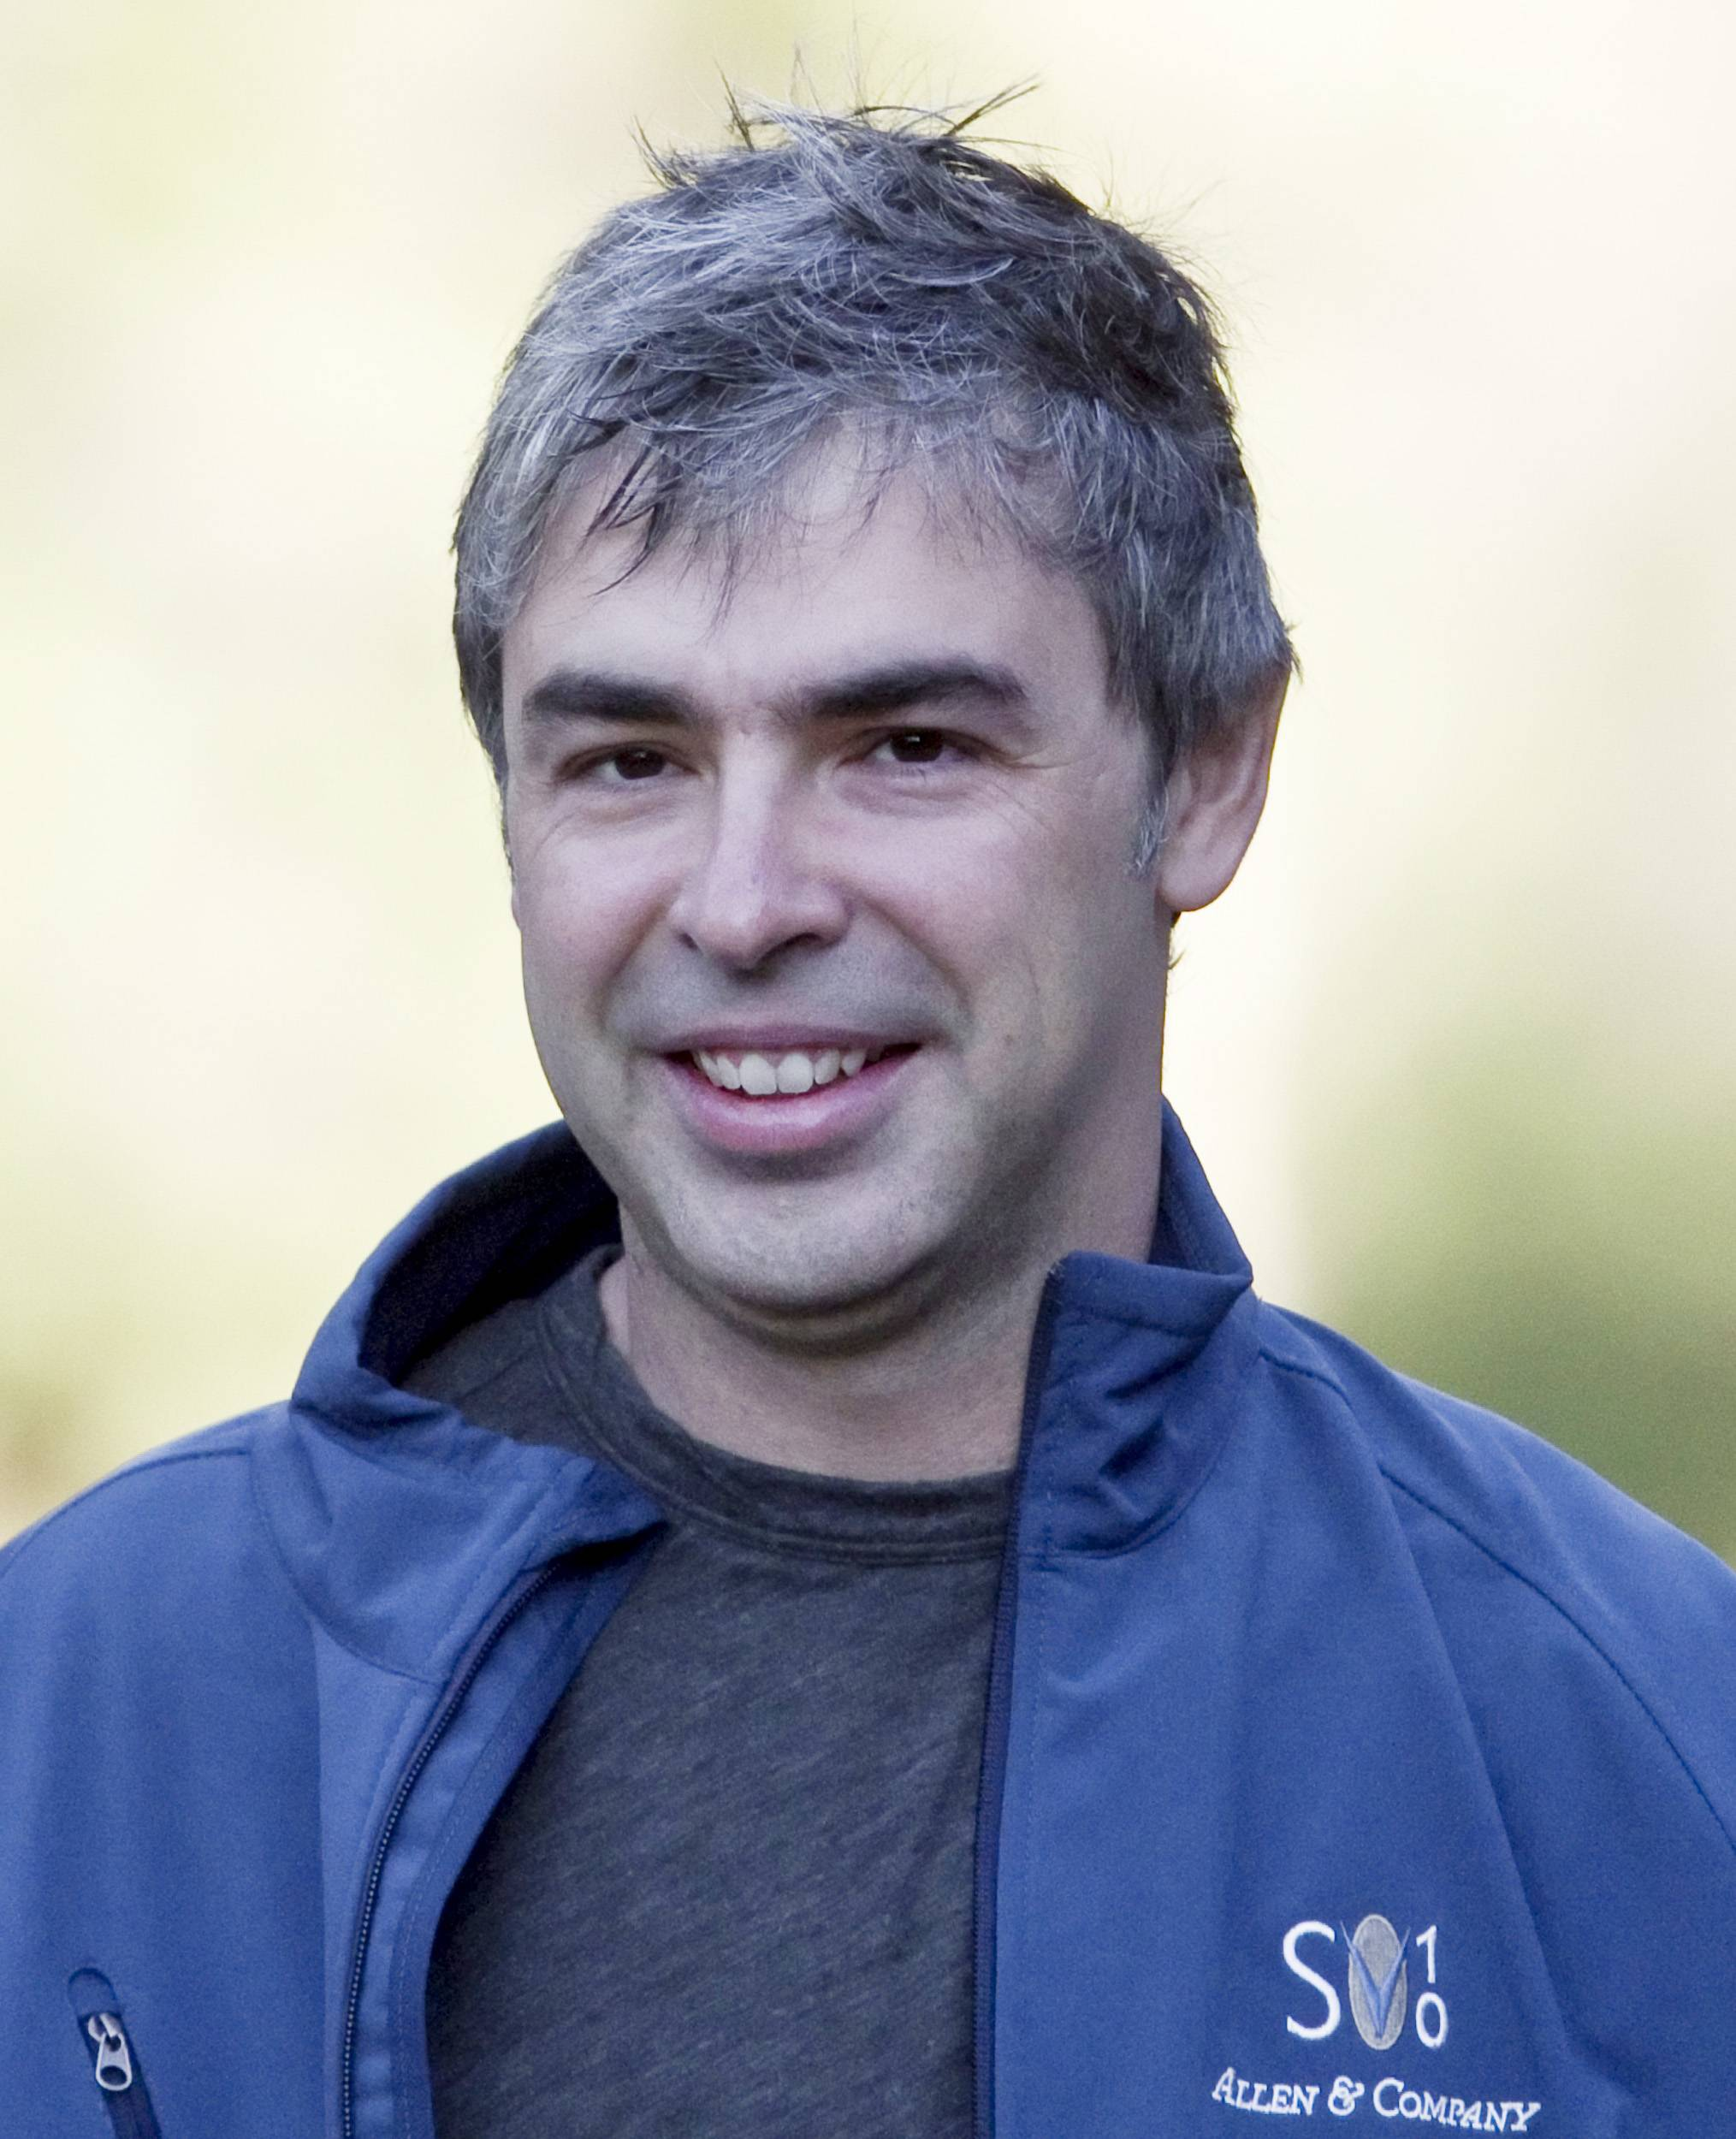 Associated Press/FileGoogle's chief executive Larry Page Page said he thinks that people's basic needs are small, yet their need to have something productive to do is significant. One of today's big social problems is finding a way to reconcile the two.